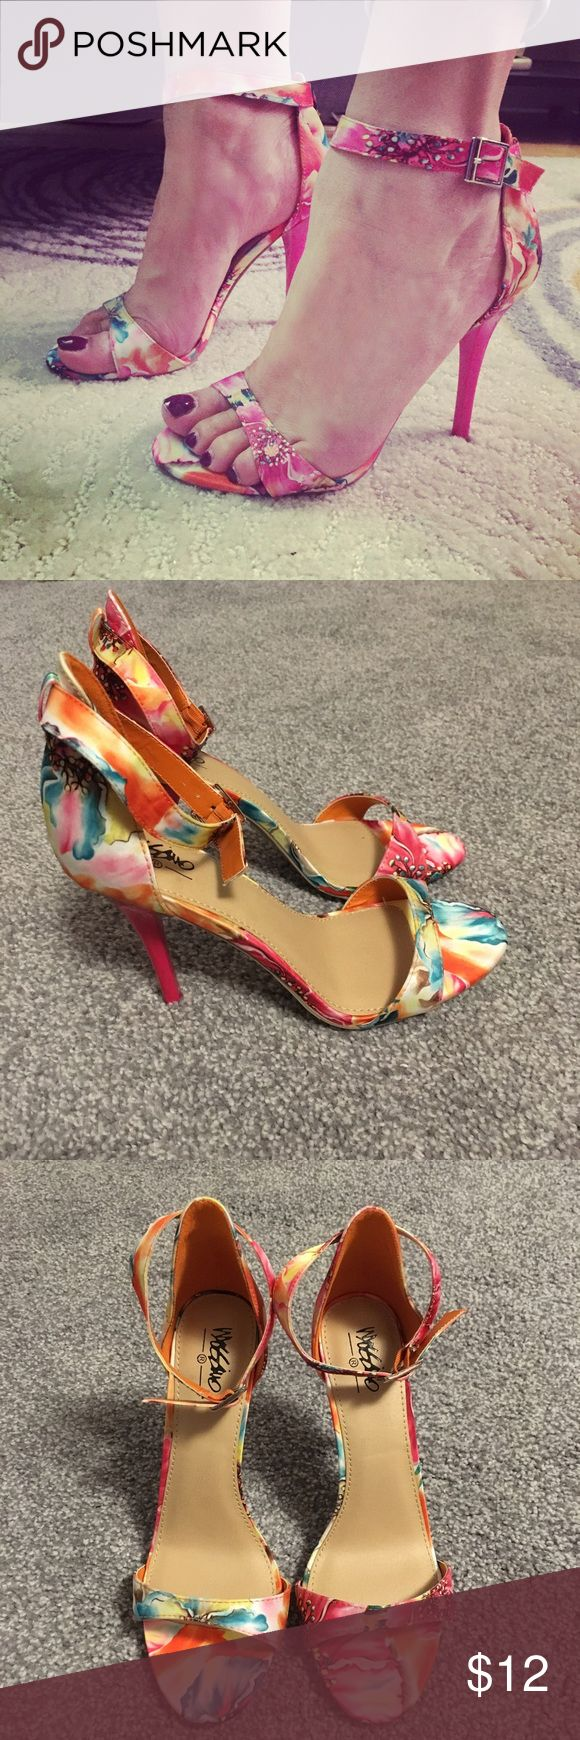 "NWOT Mossimo floral strappy heeled sandals sz 6.5 Cute floral sandals with a 4"" hot pink patent heel. Size 6.5 but a little roomy, I'm a true size 7 and they fit well but with a sole cushion would be better for a 6.5. Only worn for the picture.. Mossimo Supply Co. Shoes Sandals"